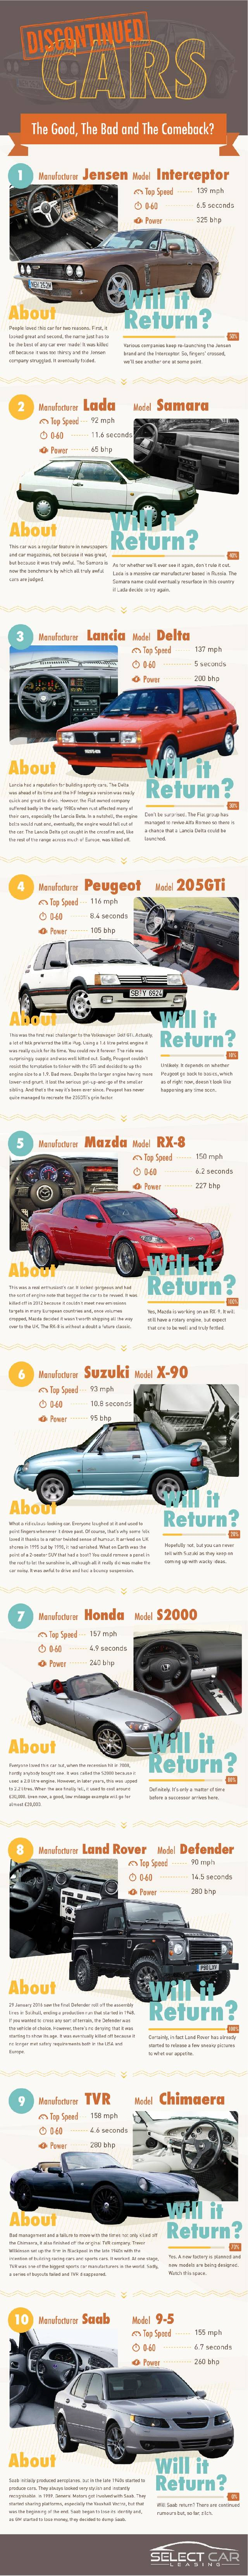 Discontinued cars